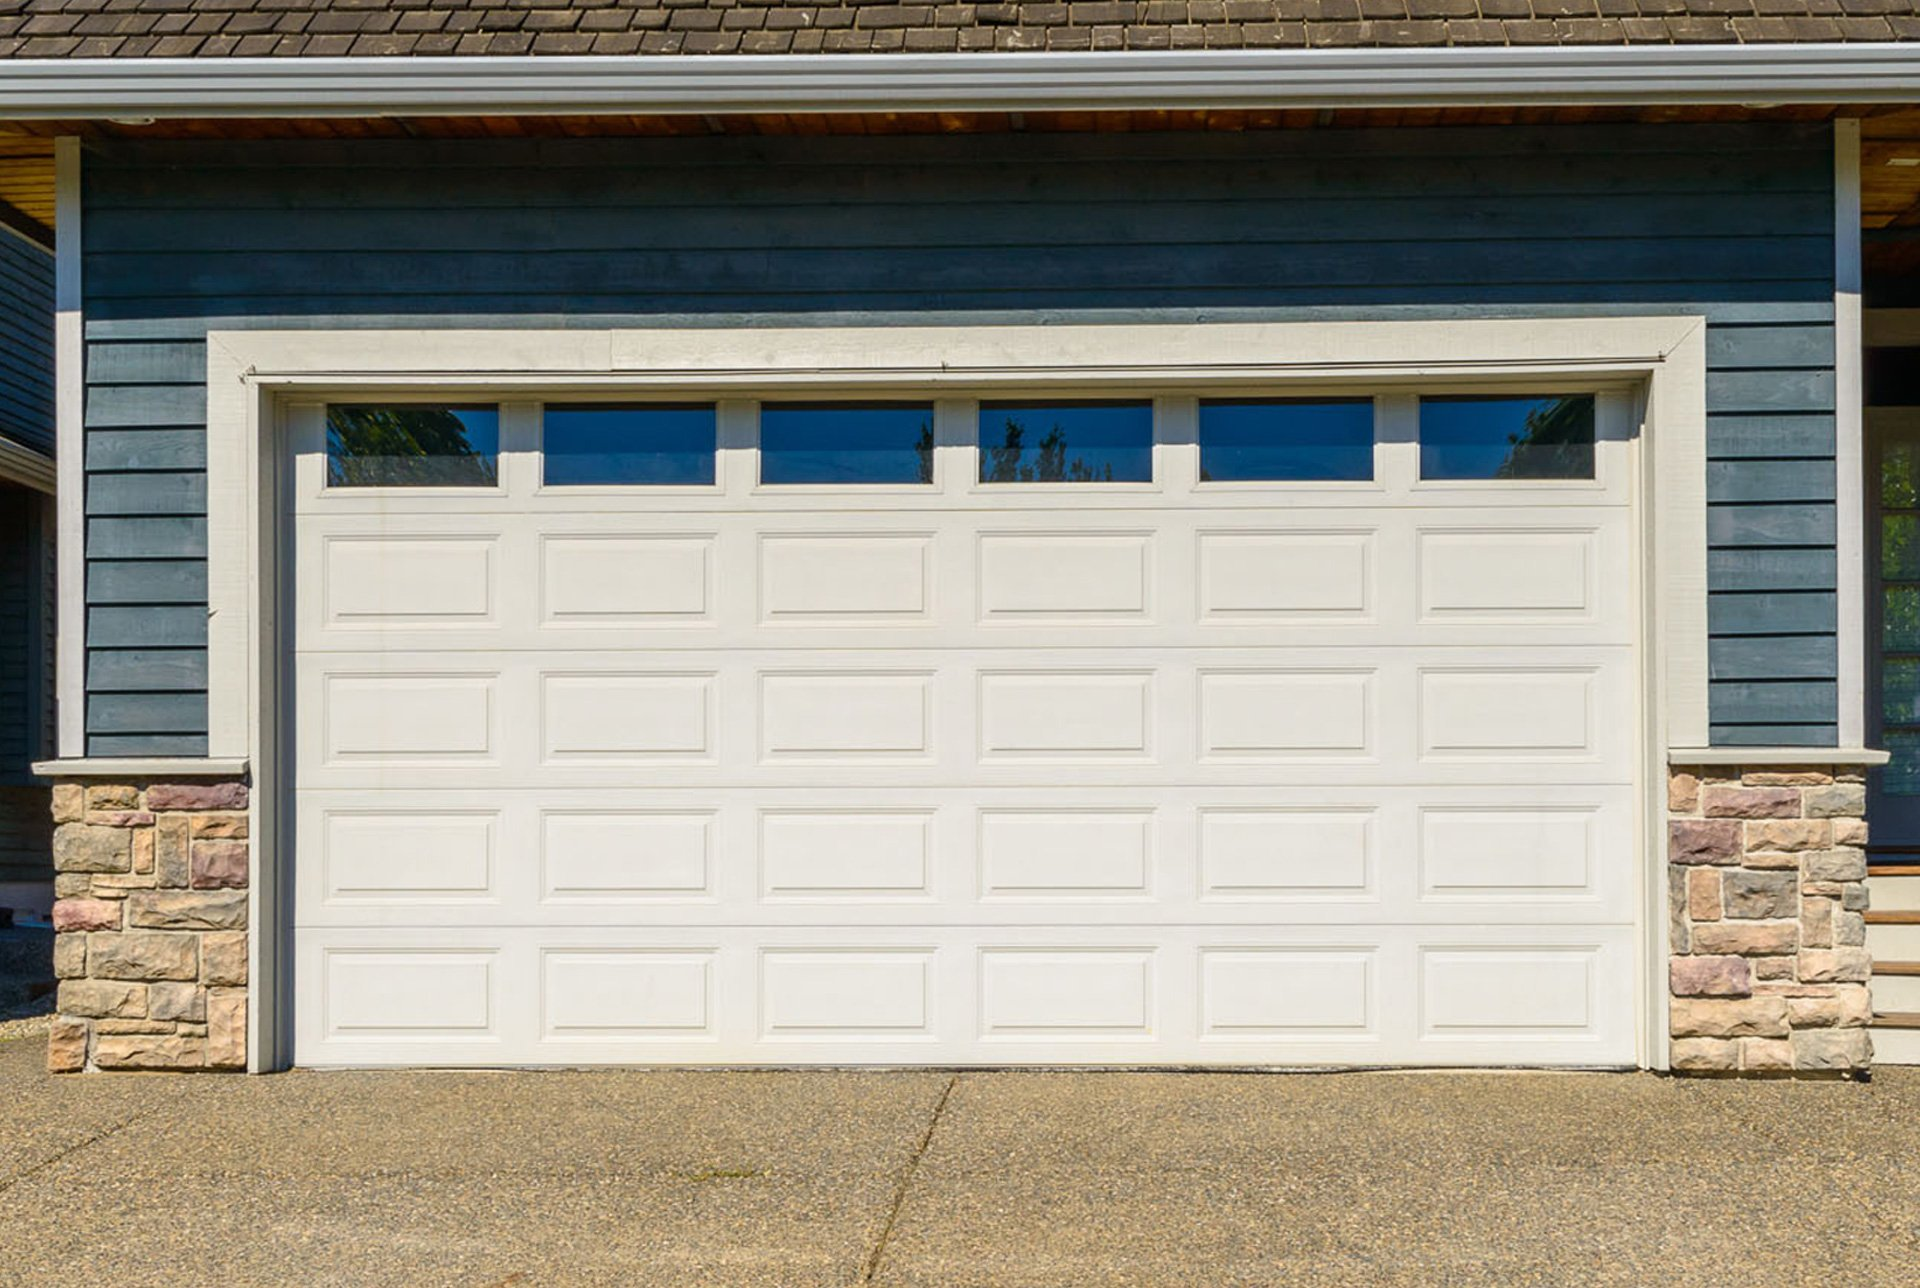 16 garage door repair weston fl decor23 for 16 garage door